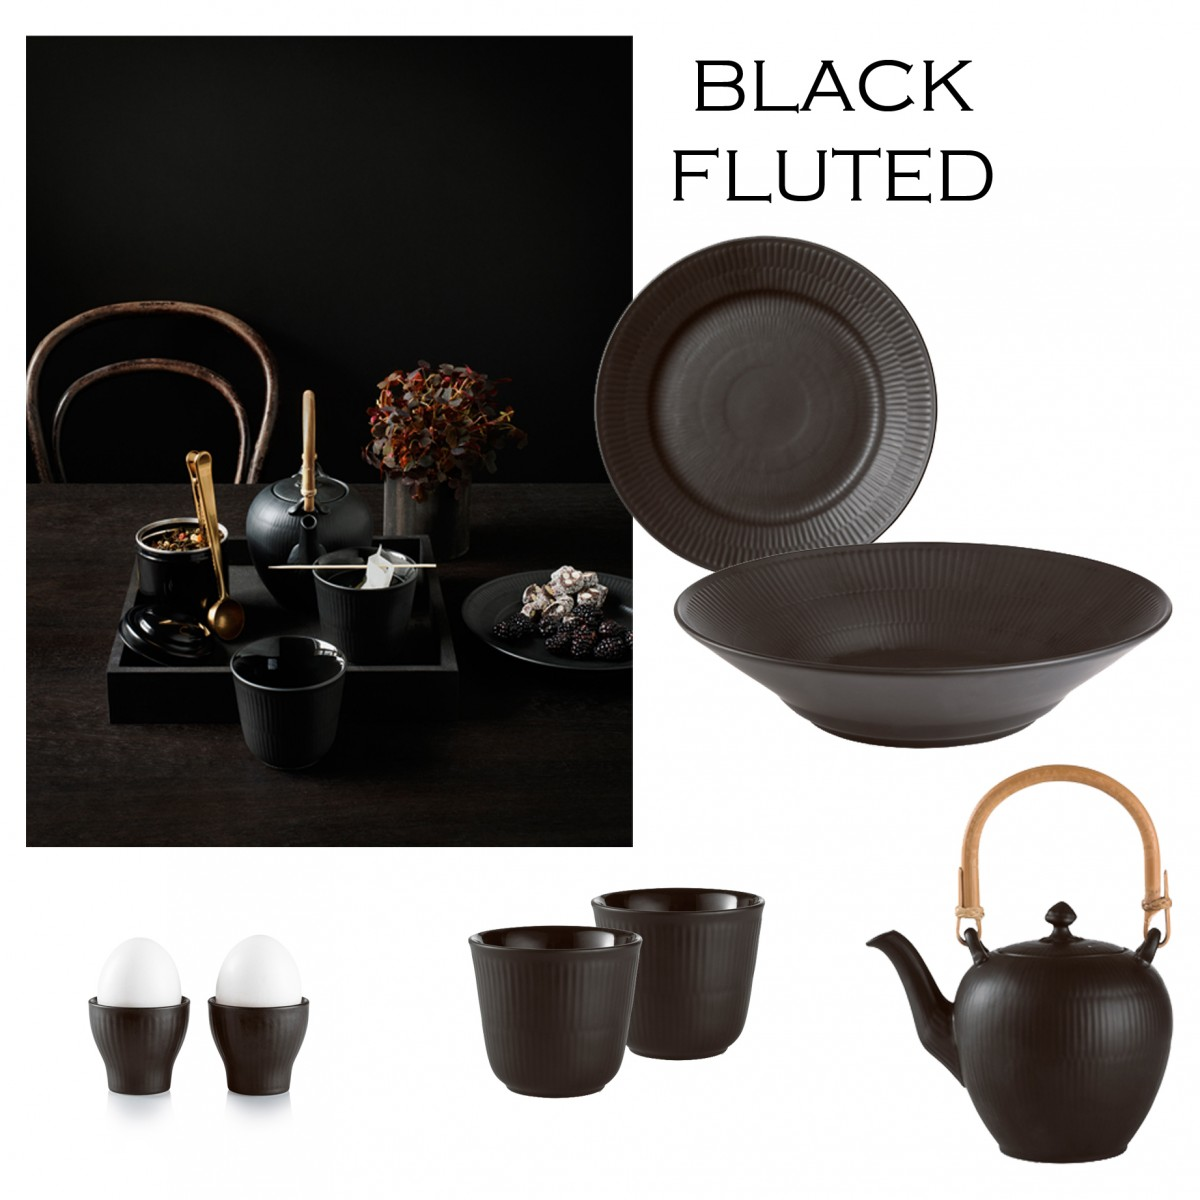 black-fluted-royalcopenhagen